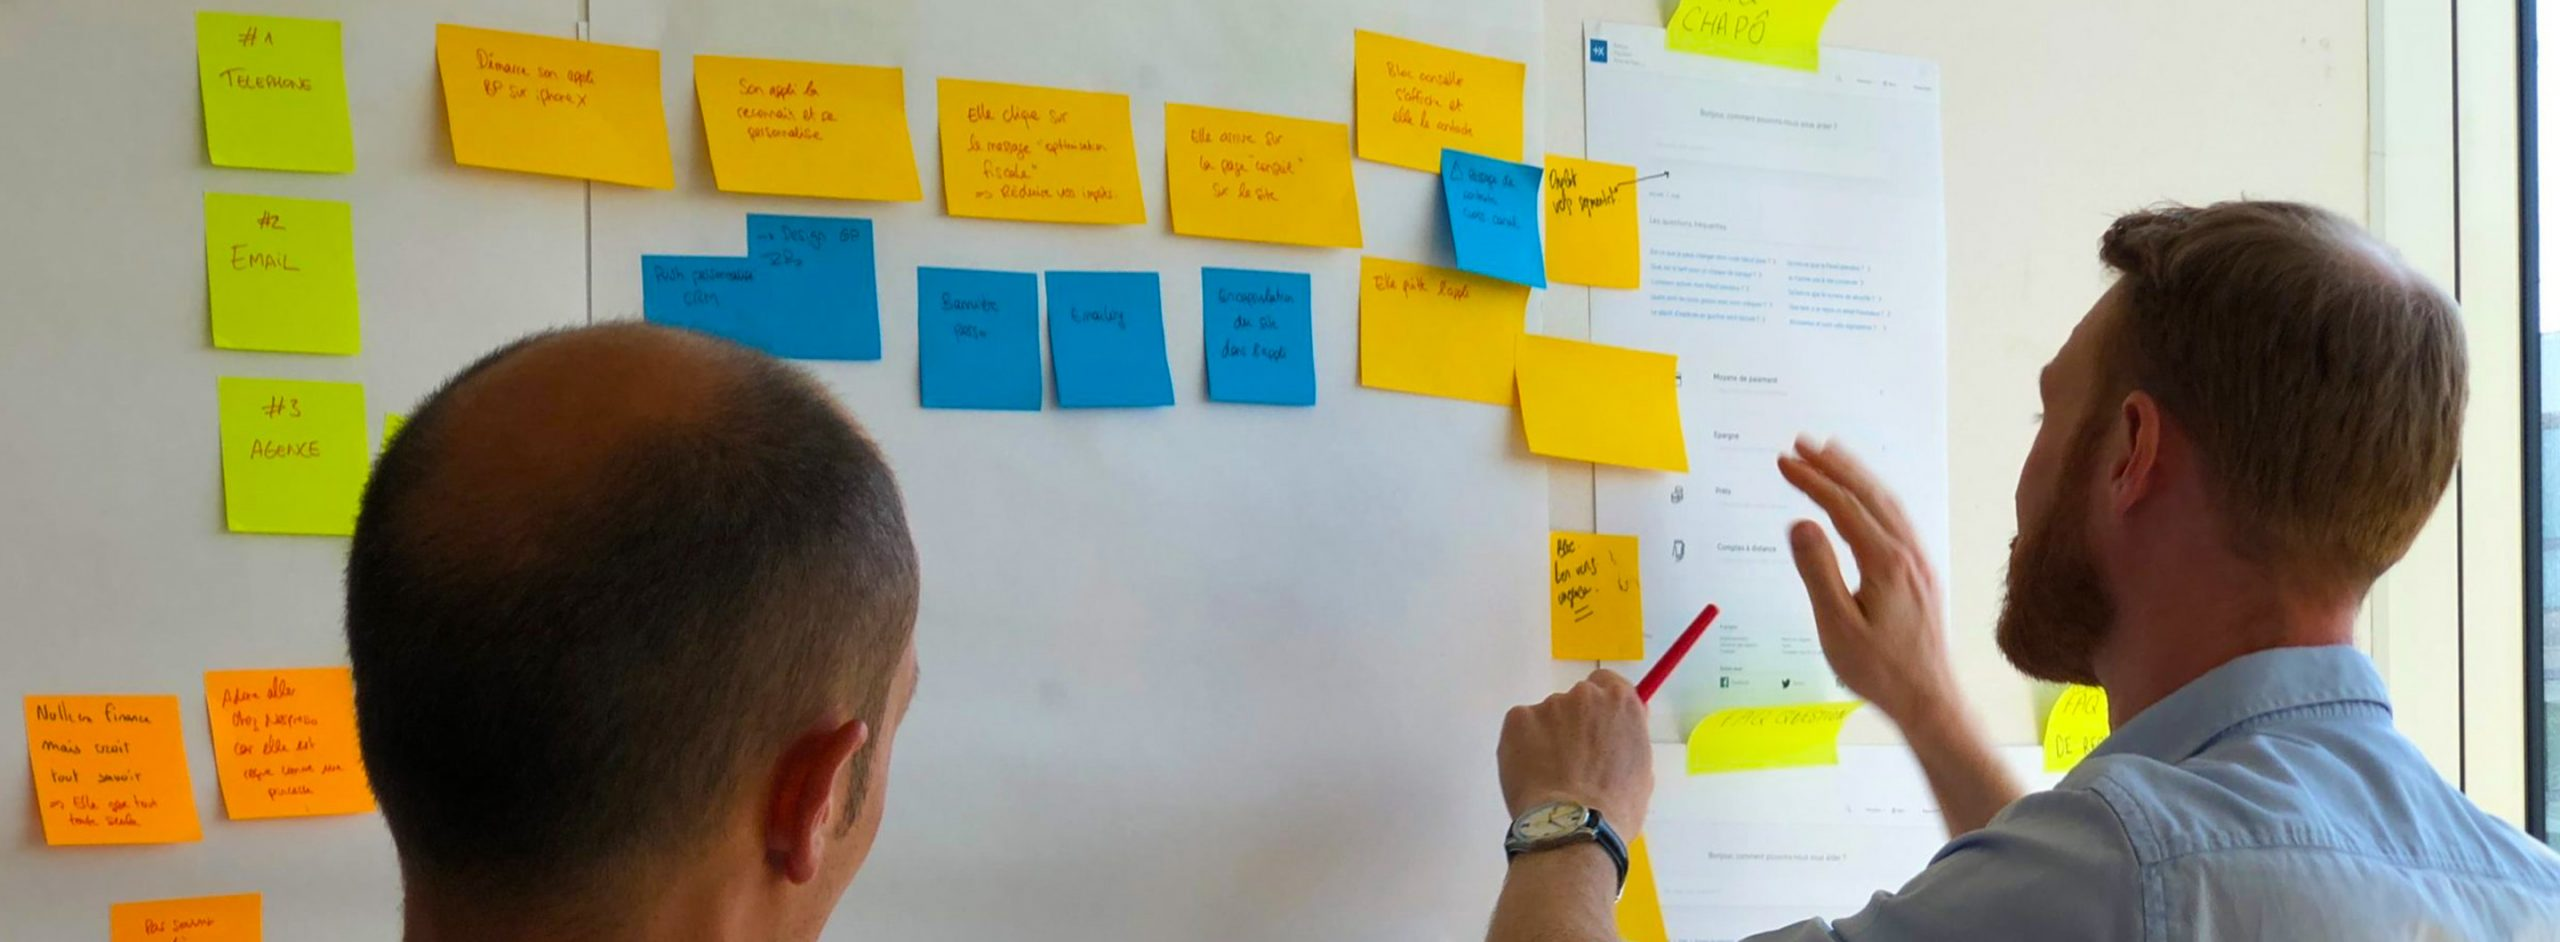 Agile Day 2019: A celebration and appreciation of Agile capabilities at Persistent